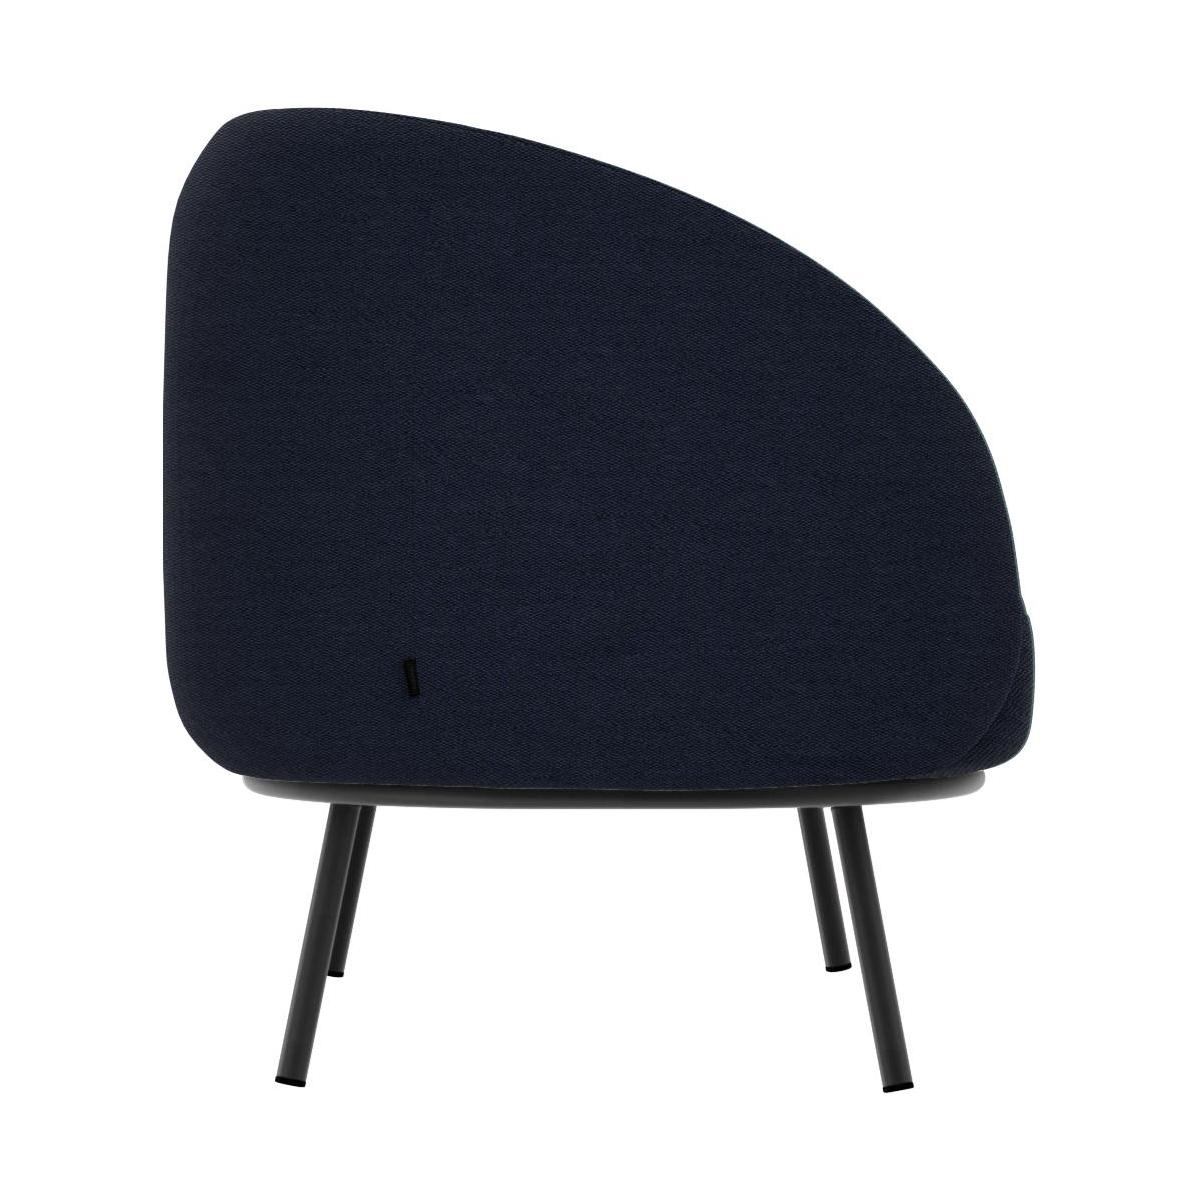 Chaiselongue aus Stoff - Blau  n°5